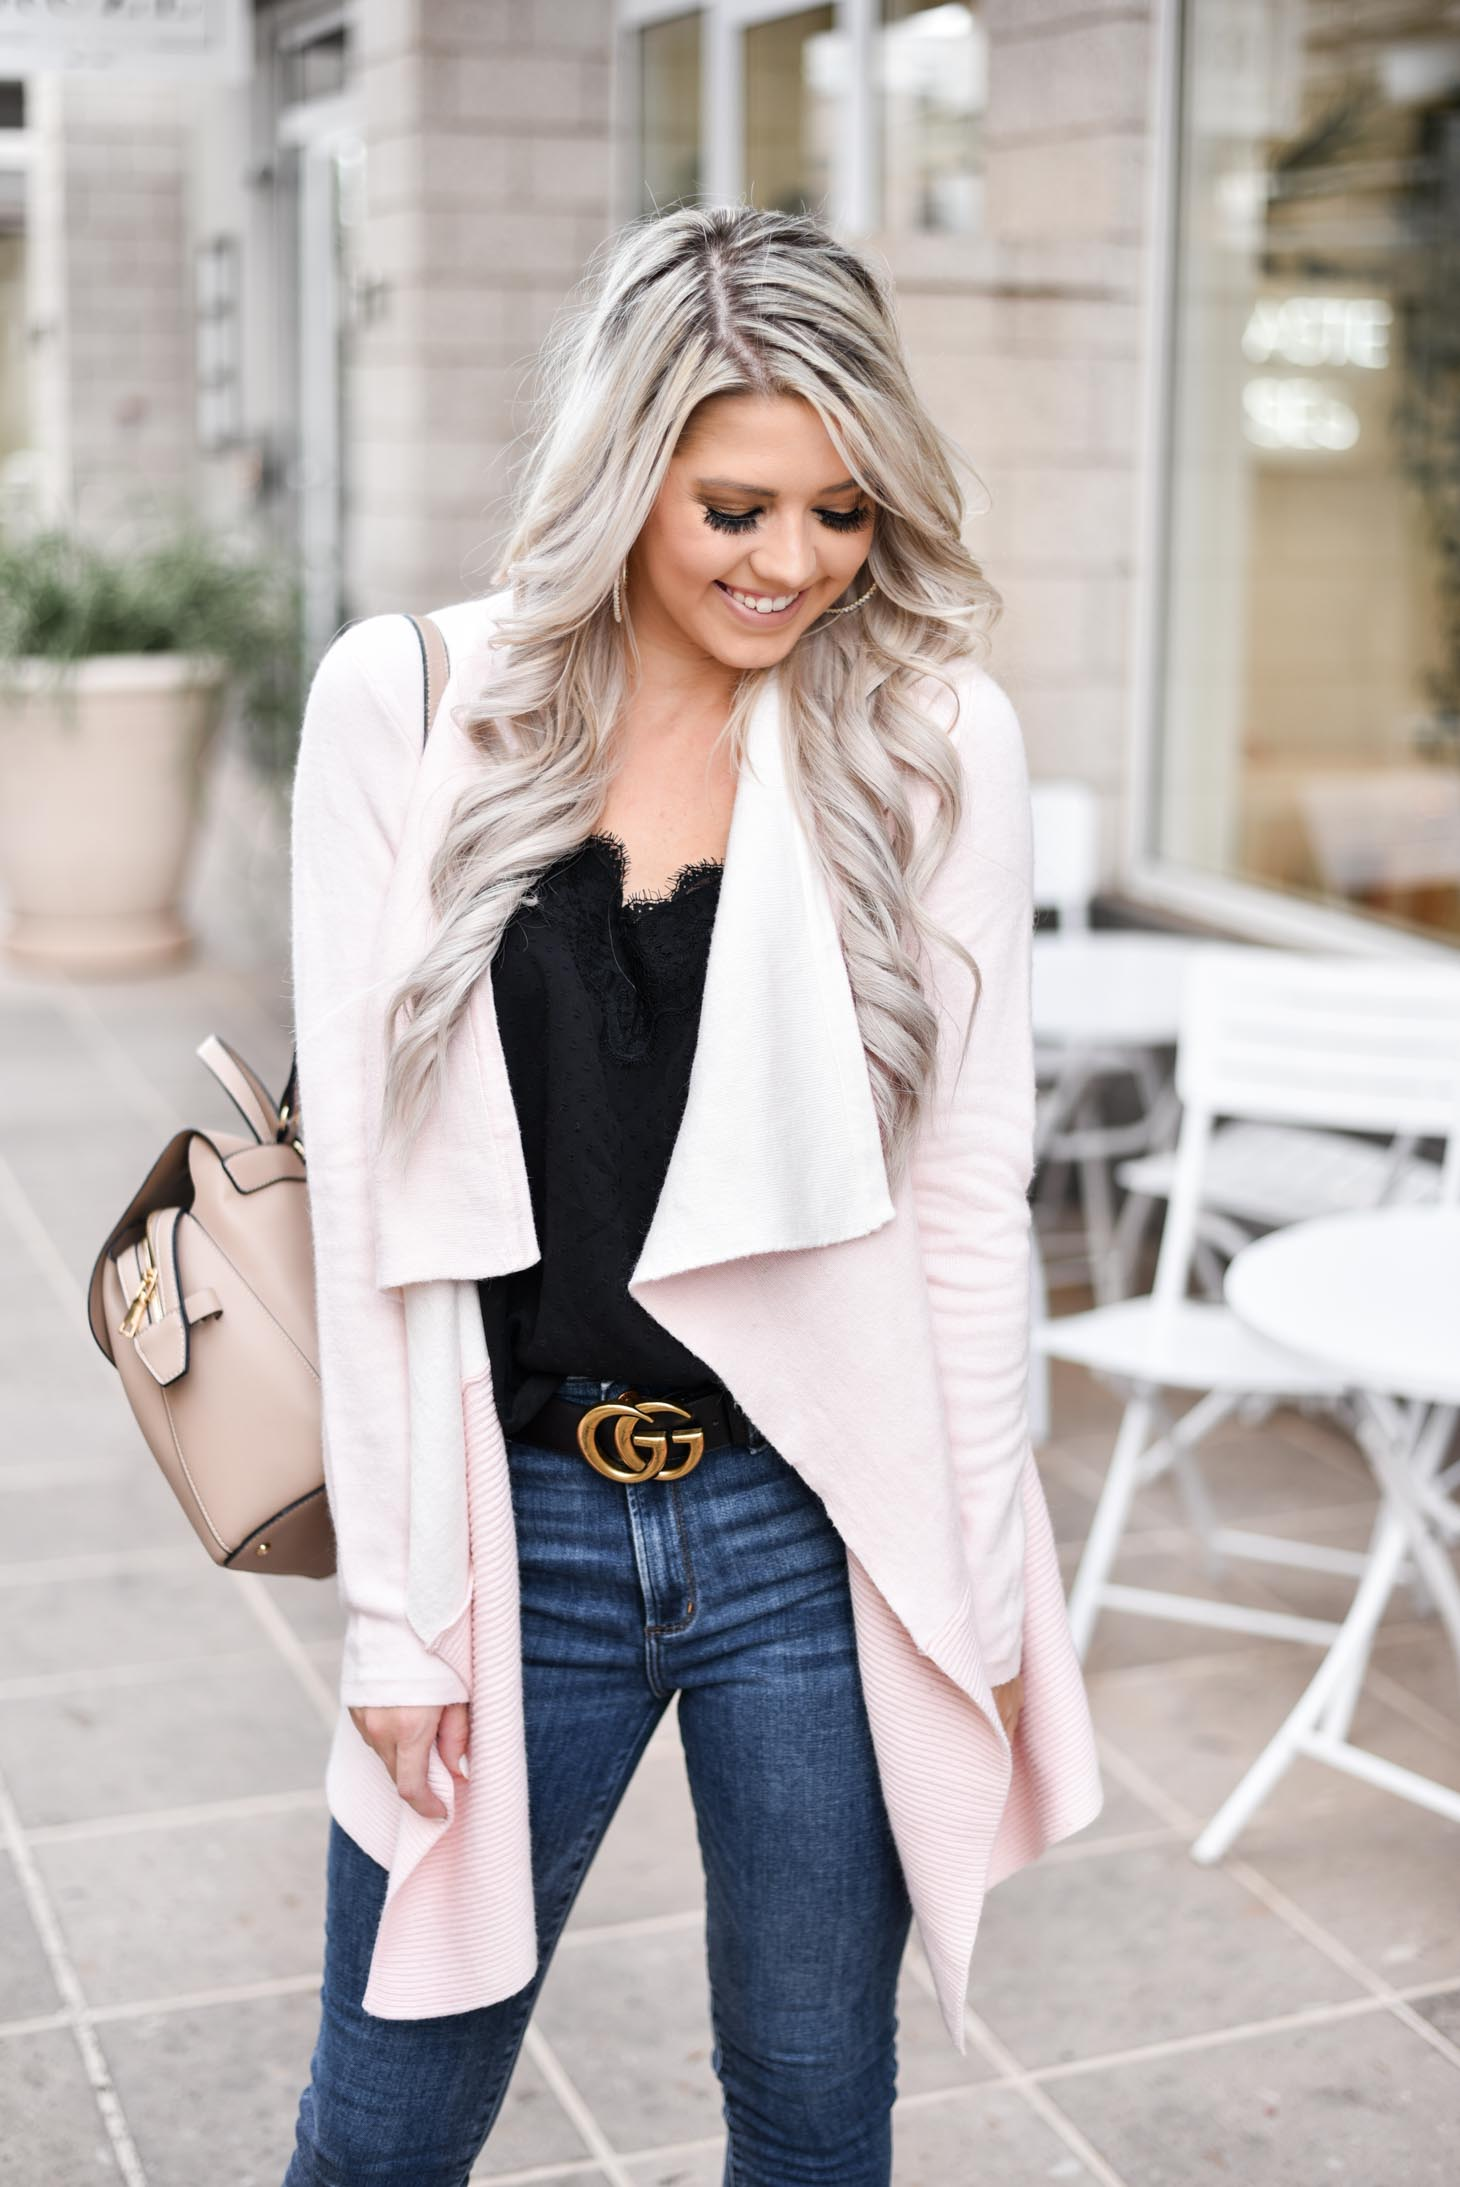 Erin Elizabeth of Wink and a Twirl shares the cutest pink cardigan from Chicwish - Perfect for pairing over jeans and a cami